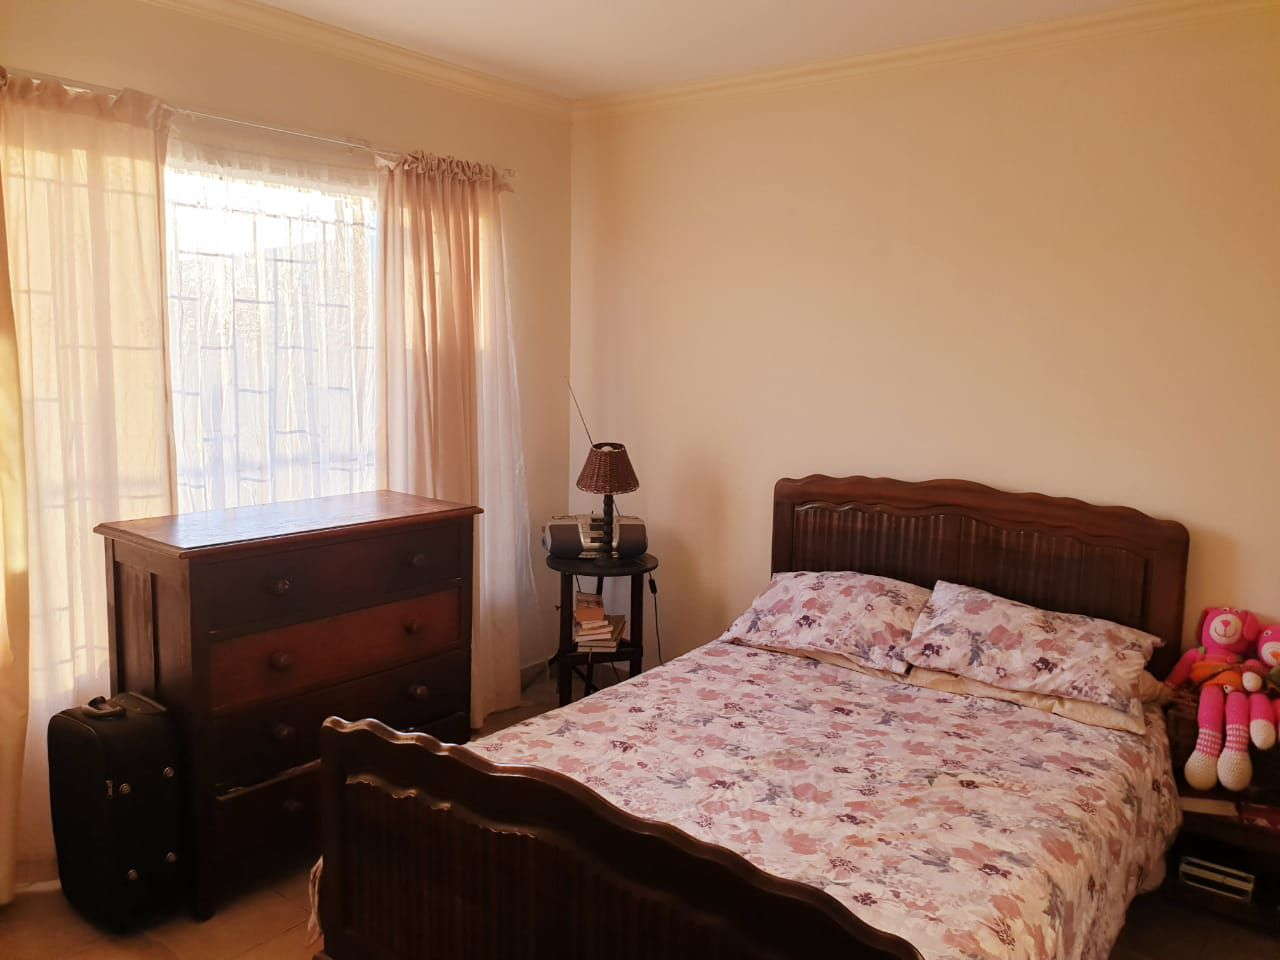 Apartment in Bailliepark - WhatsApp Image 2019-08-27 at 12.41.48.jpeg